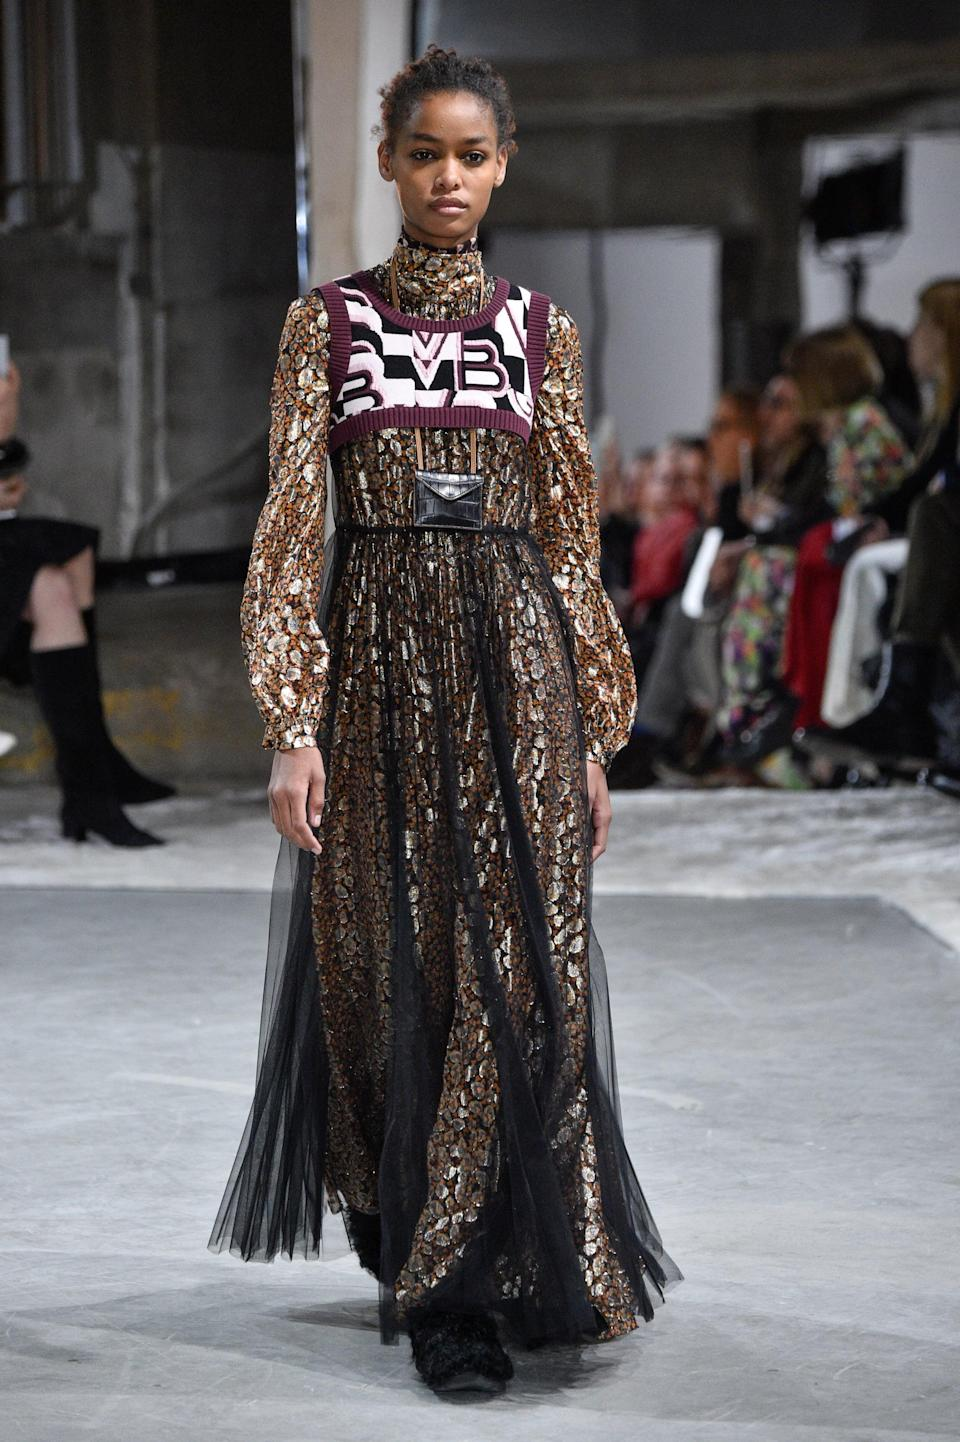 <p>Angolan model Blesnya Minher catapulted into stardom when she appeared alongside Christy Turlington and Lya Kebede in Valentino's spring/summer 2017 campaign. Since then, she has proven herself a promising newcomer, walking on the runways of Miu Miu, Kenzo, and Christian Dior.</p>